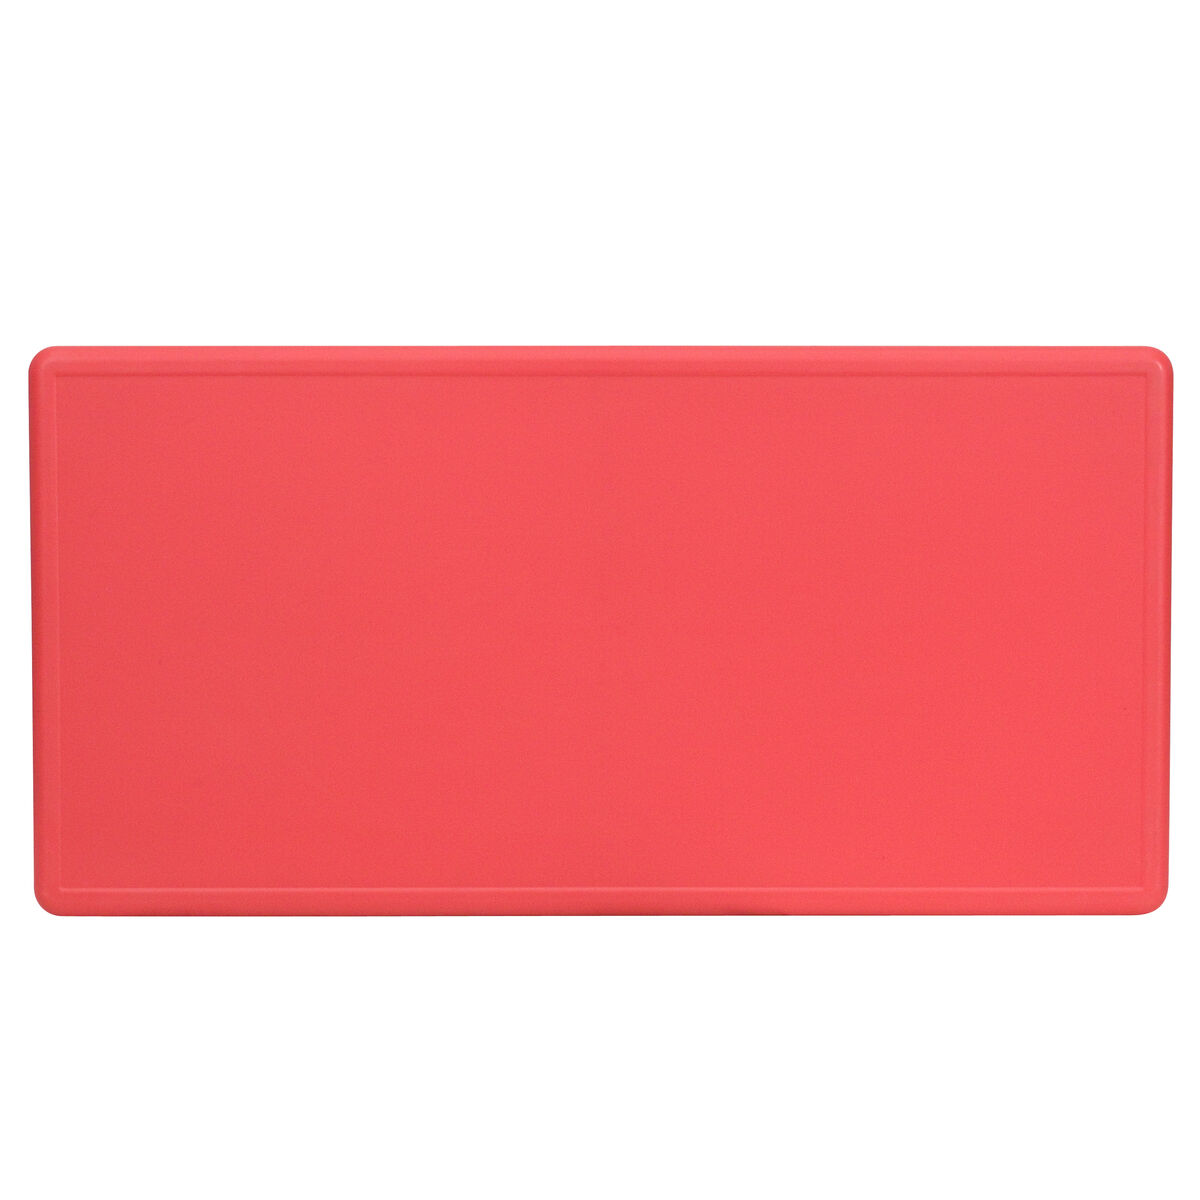 Red Preschool Activity Table Yu Ycx 001 2 Rect Tbl Red Gg